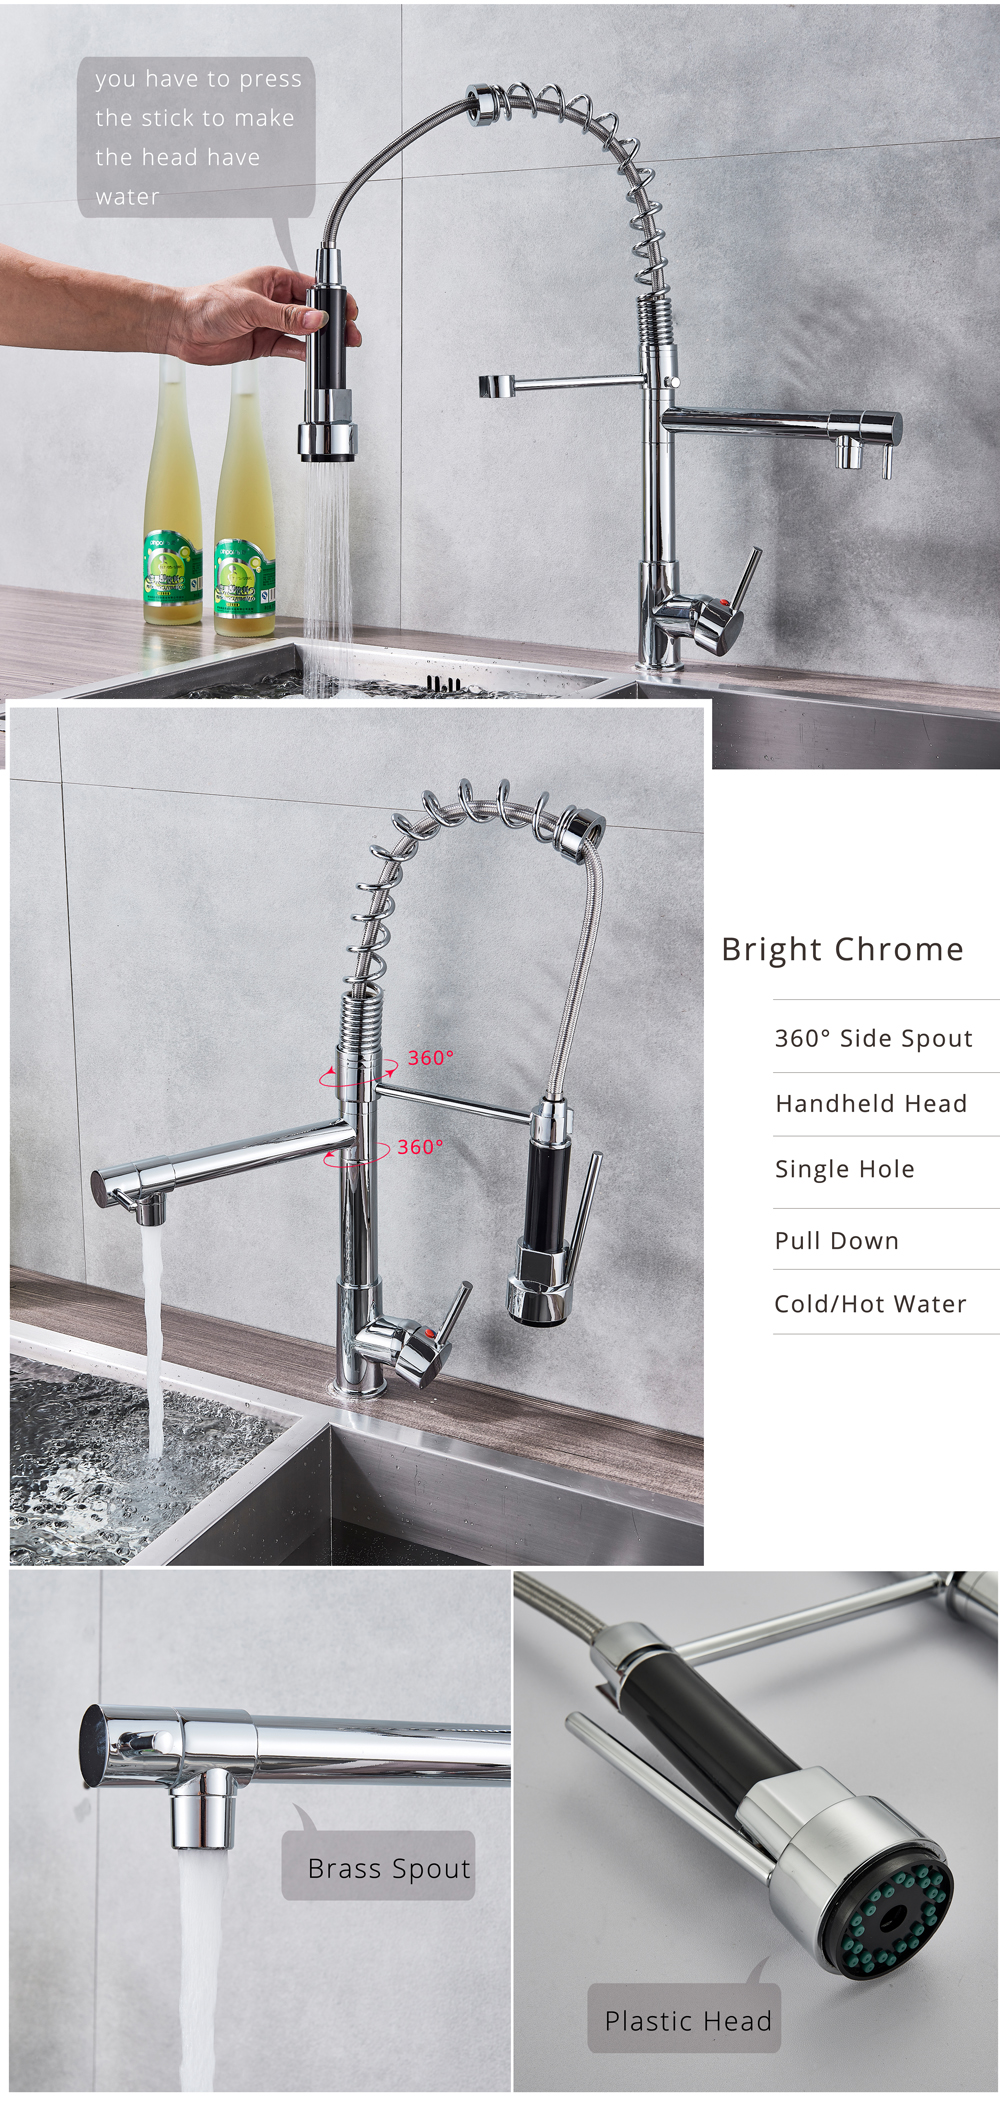 H9e1f22c9bac14ae2947e4db26893b4b5T Rozin Black and Rose Golden Spring Pull Down Kitchen Sink Faucet Hot & Cold Water Mixer Crane Tap with Dual Spout Deck Mounted